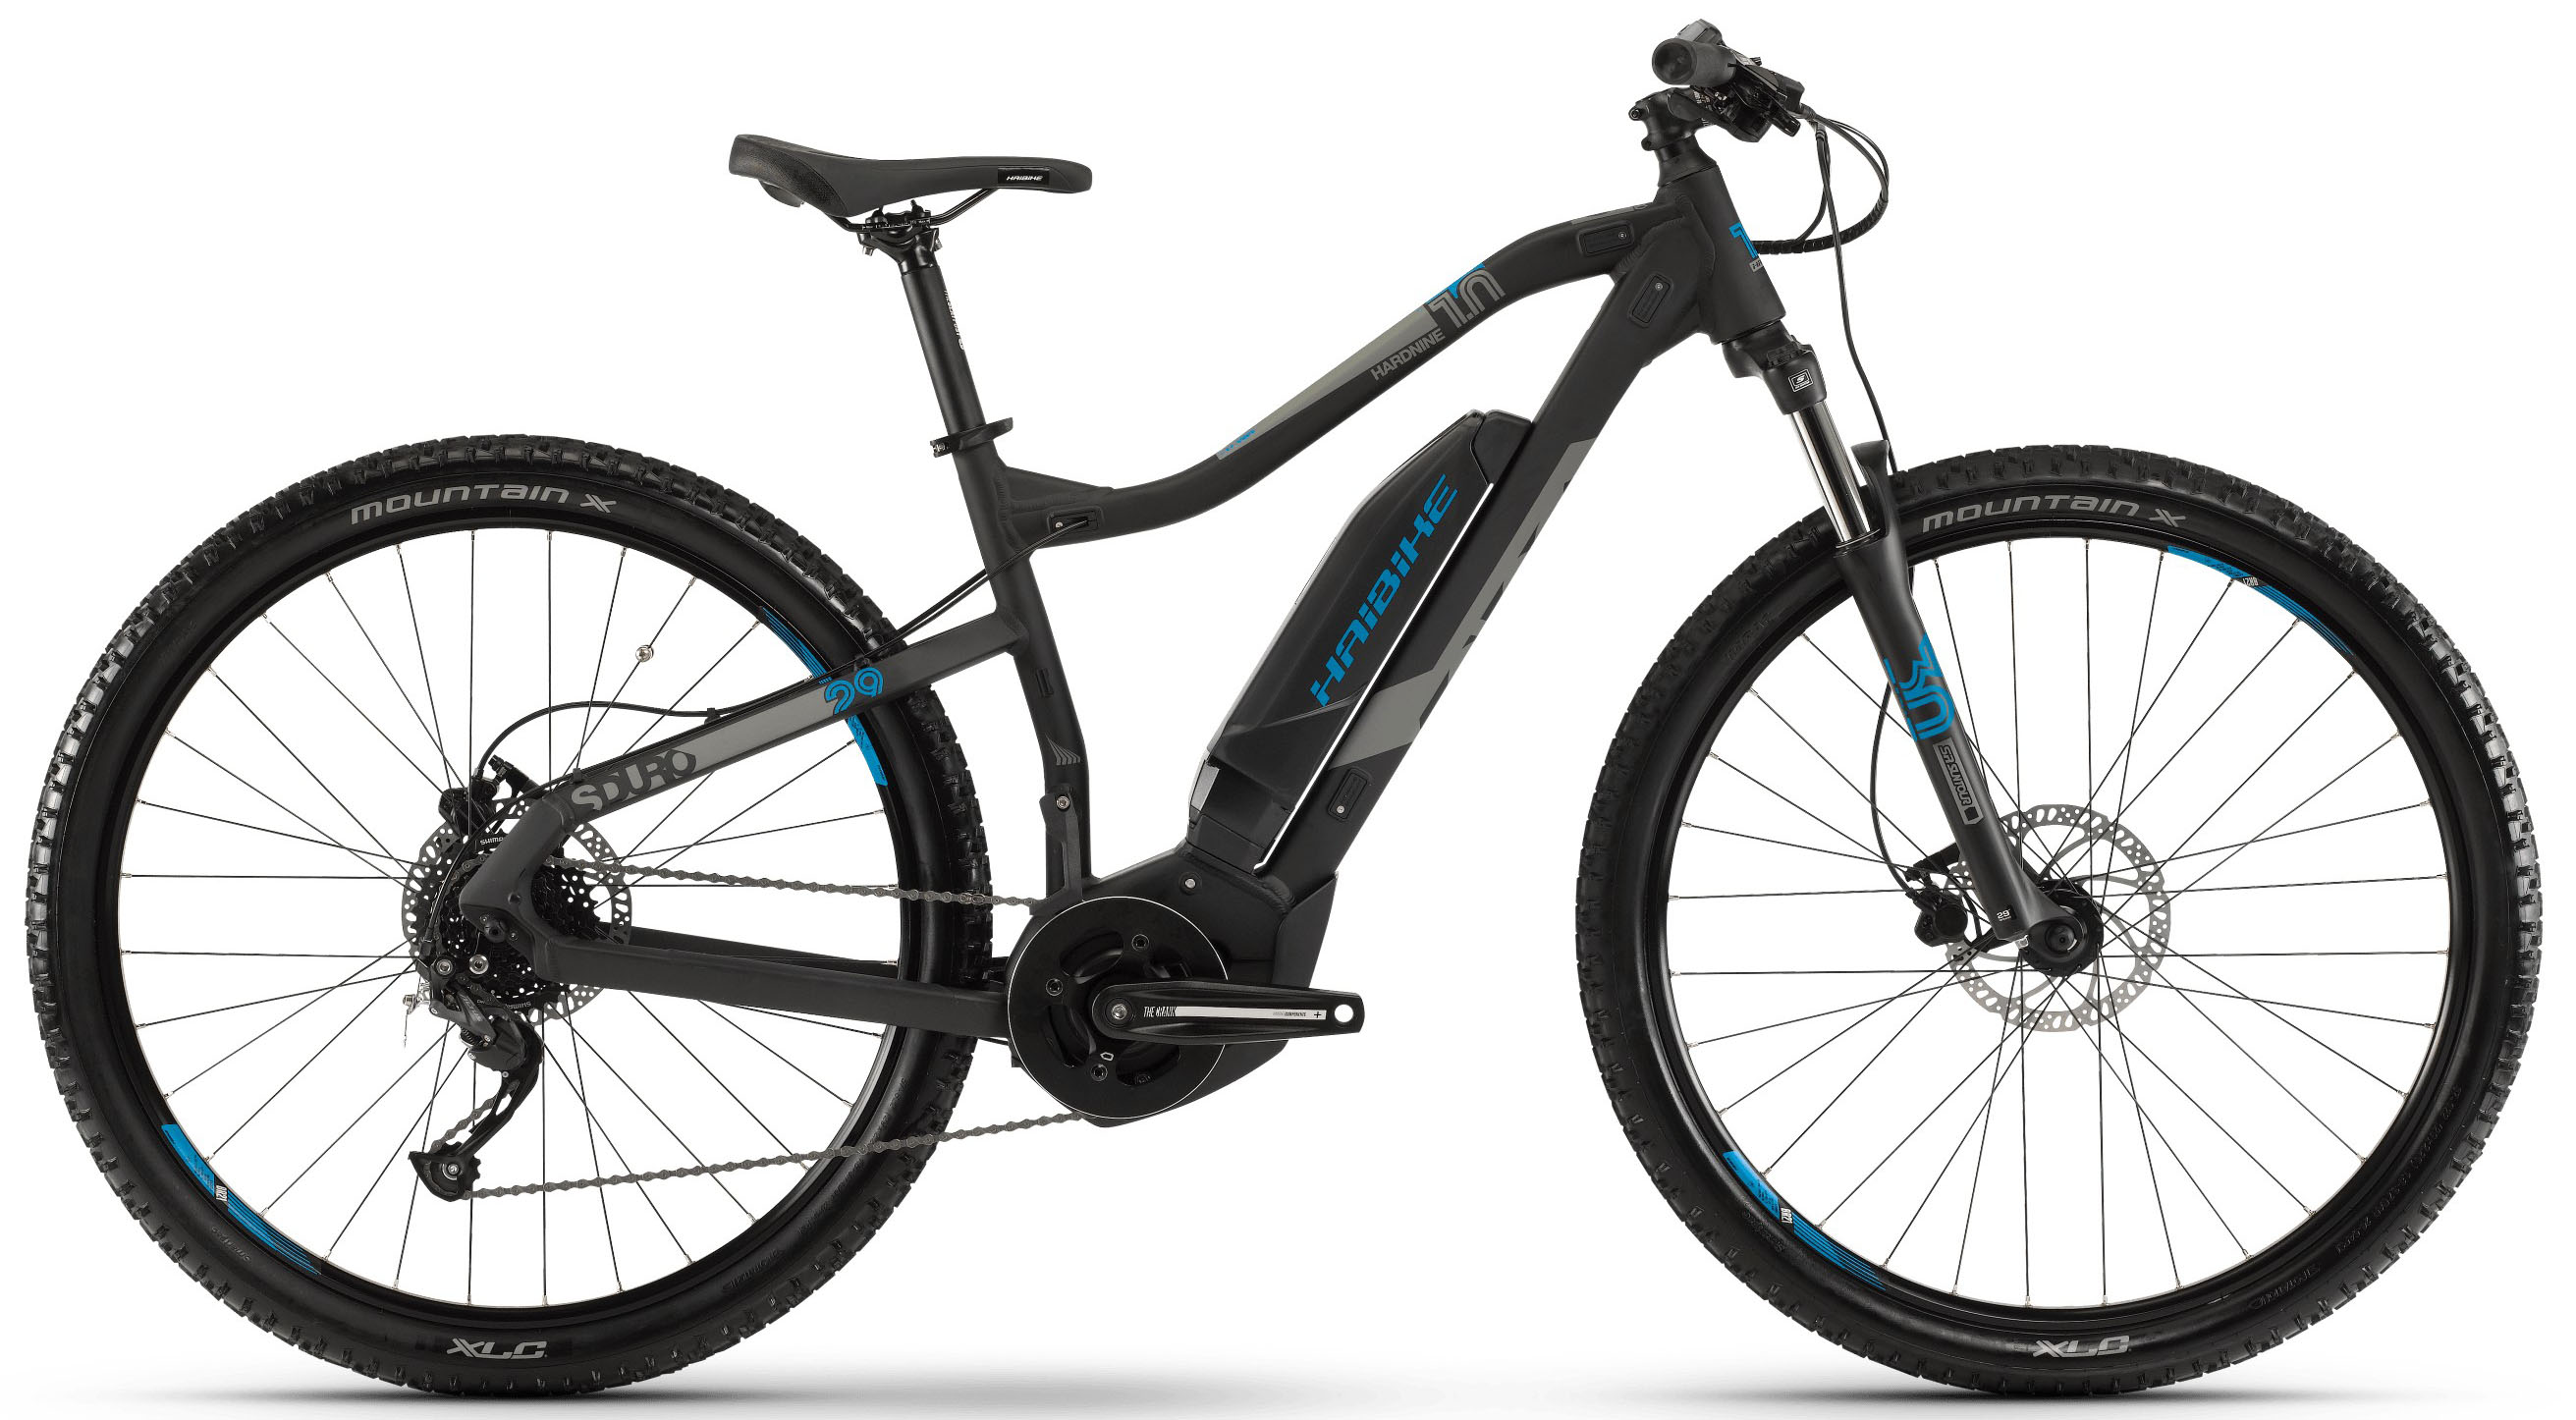 Велосипед Haibike SDURO HardNine 1.0 400Wh 9-G Altus 2019 велосипед haibike sduro trekking 4 0 he 400wh 10s deore 2018